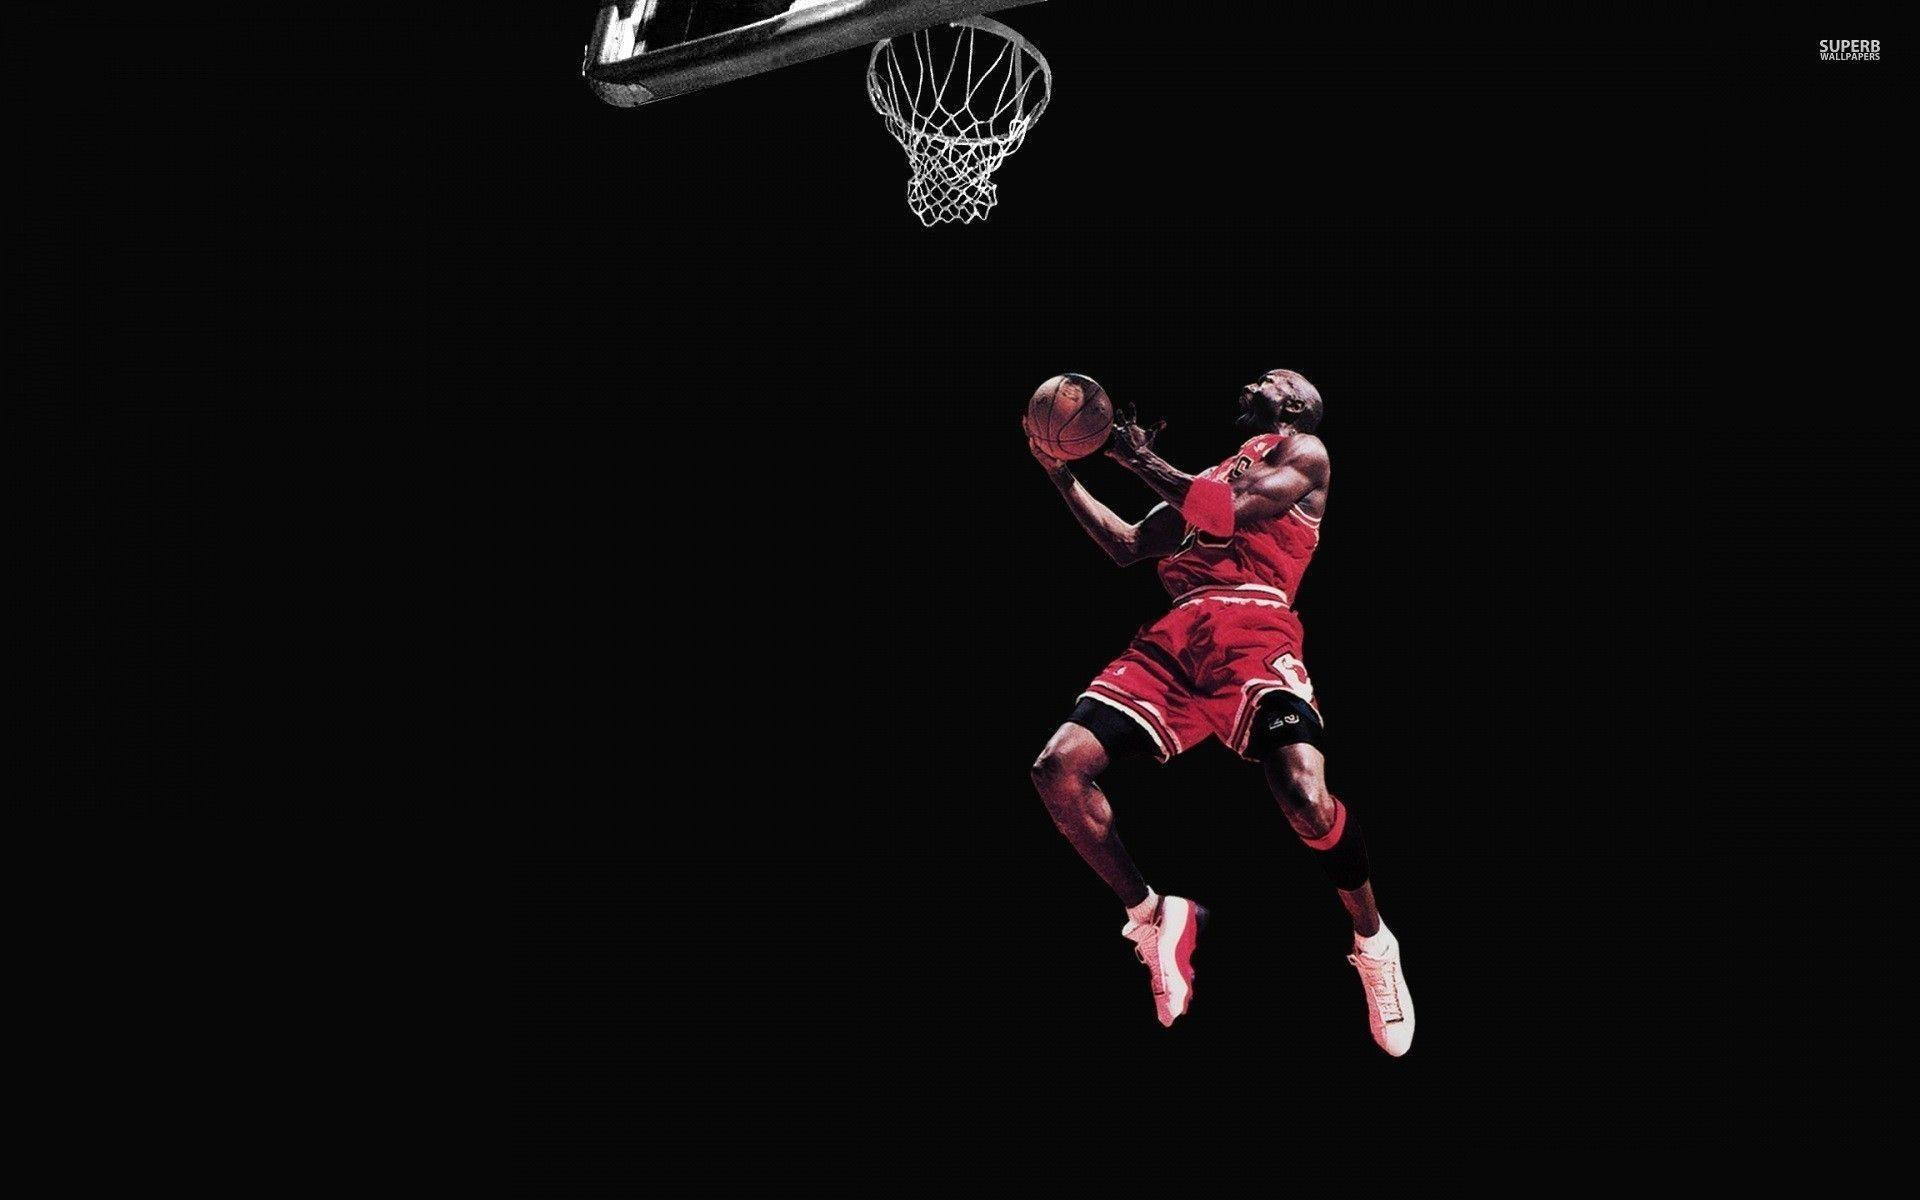 Michael Jordan Dunk Wallpapers 1920x1200